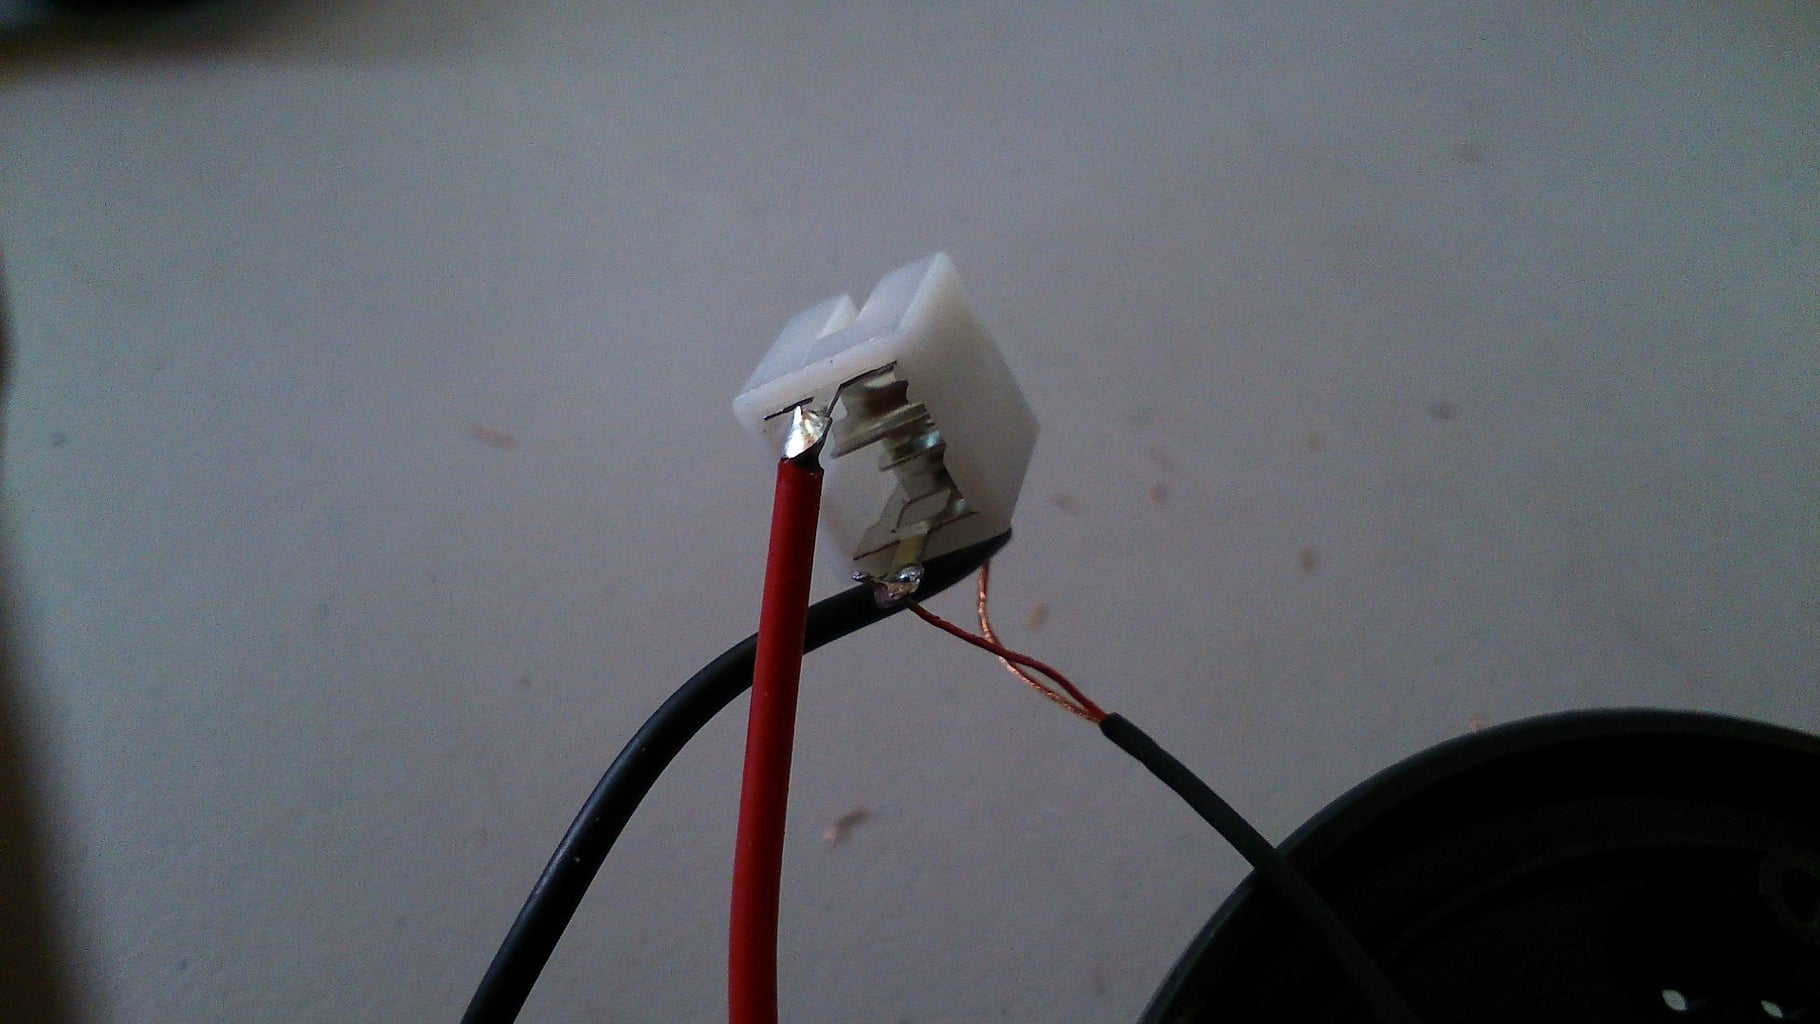 Soldering Wires to 3.5mm Stereo Jack